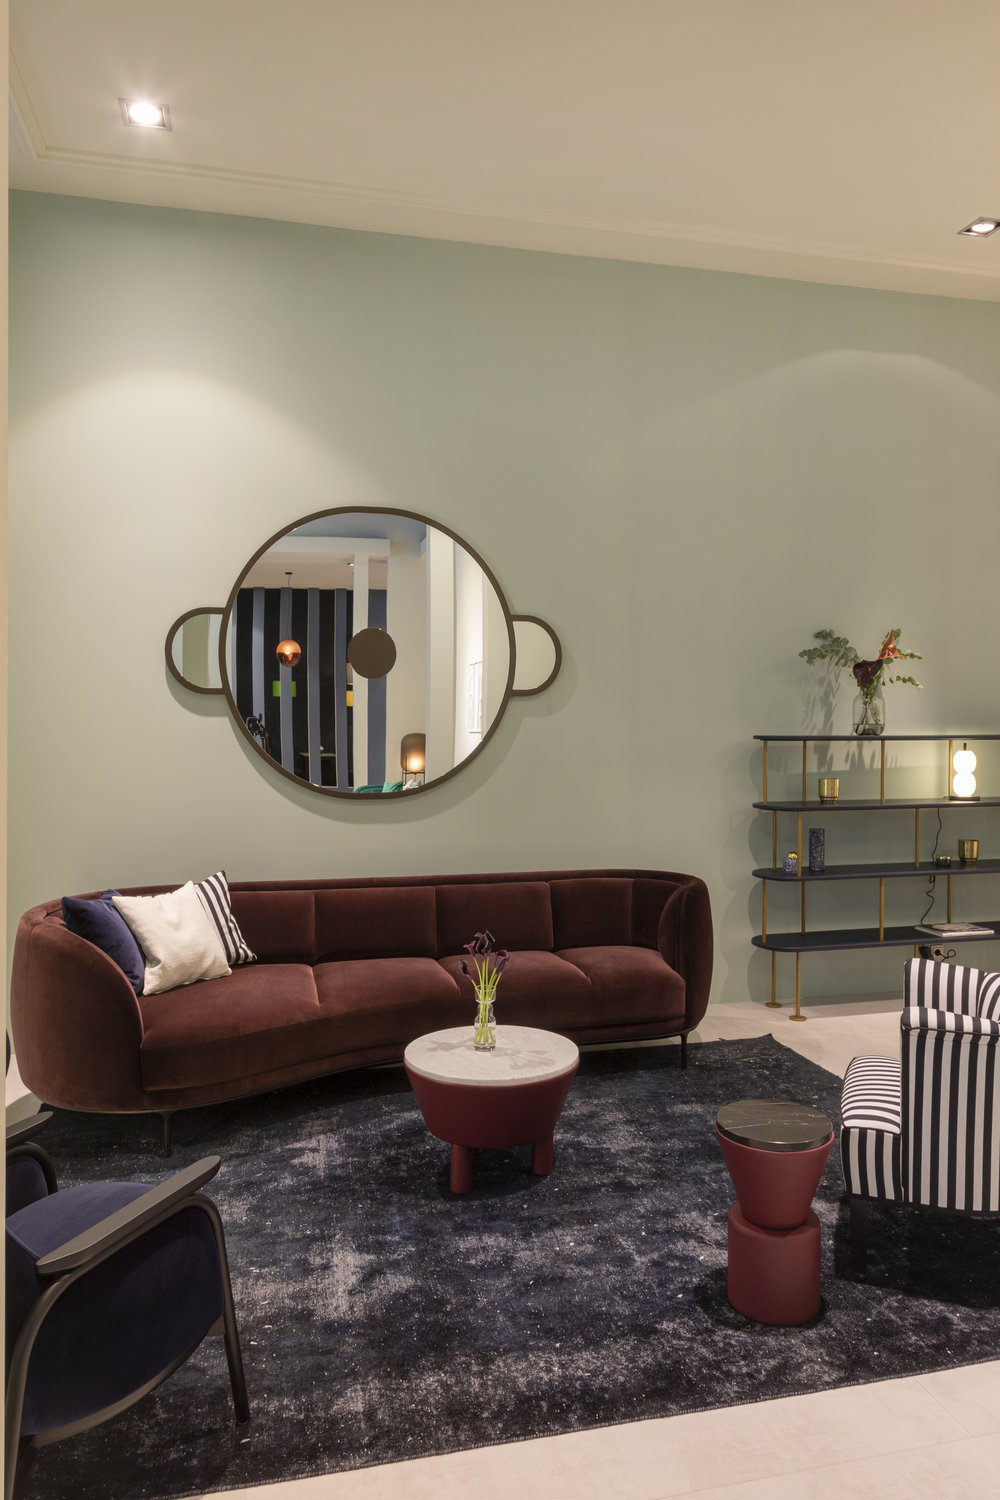 Vuelta lounge sofa, Vuela high-back lounge chair, Monkey mirror, leather side tables, and Grain Cut table, and MD shelf, all be Jaime Hayon. Alleegasse lounge chair by Josef Hoffmann.